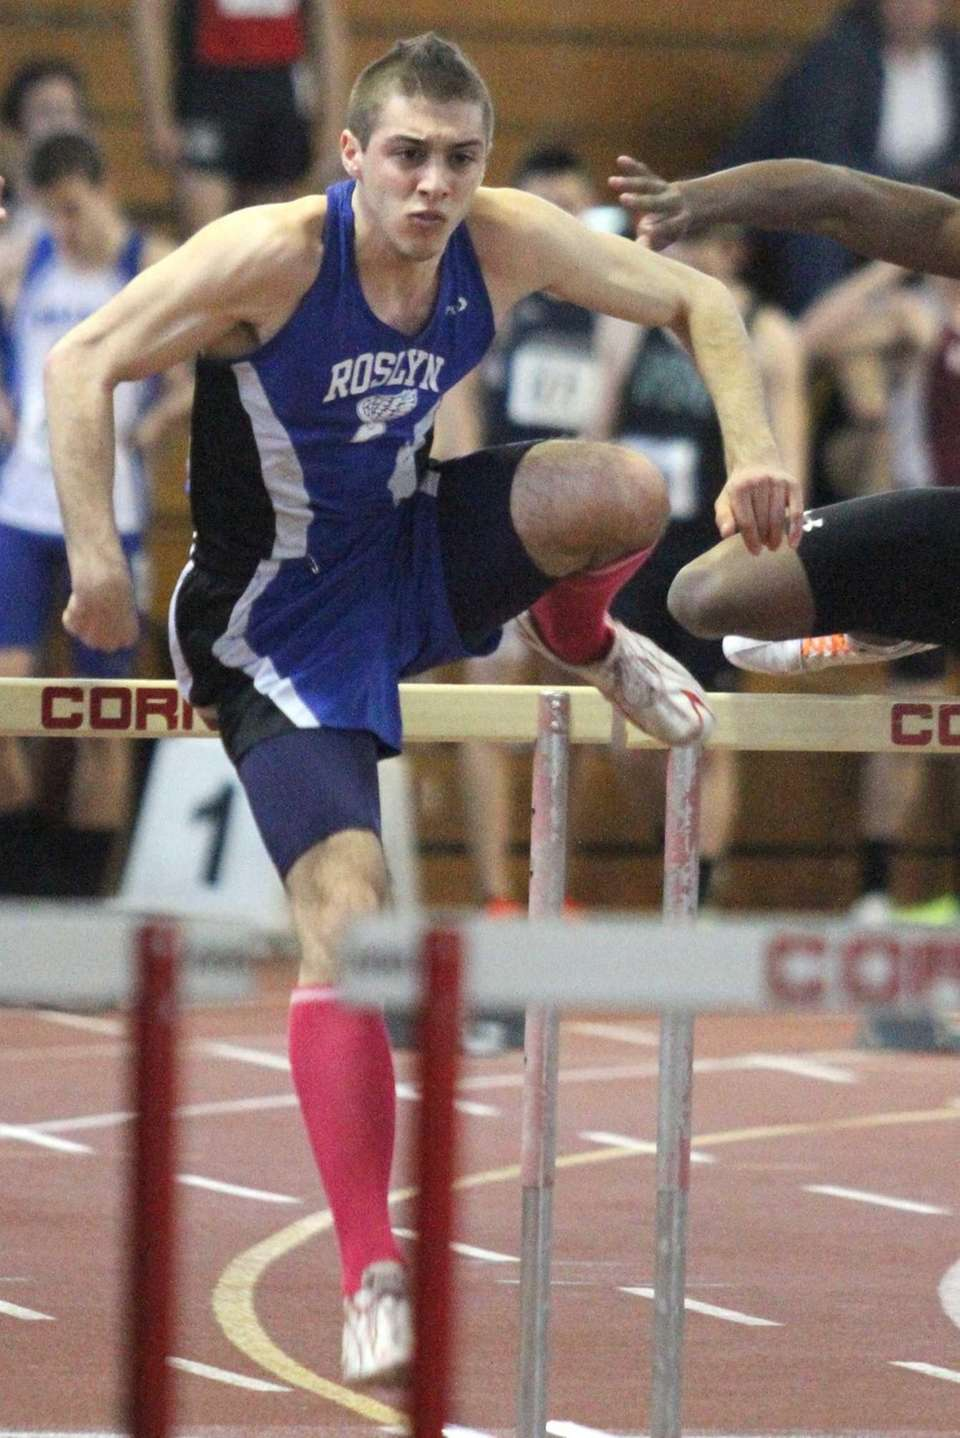 Roslyn's Luke Pascale heads to the finish line